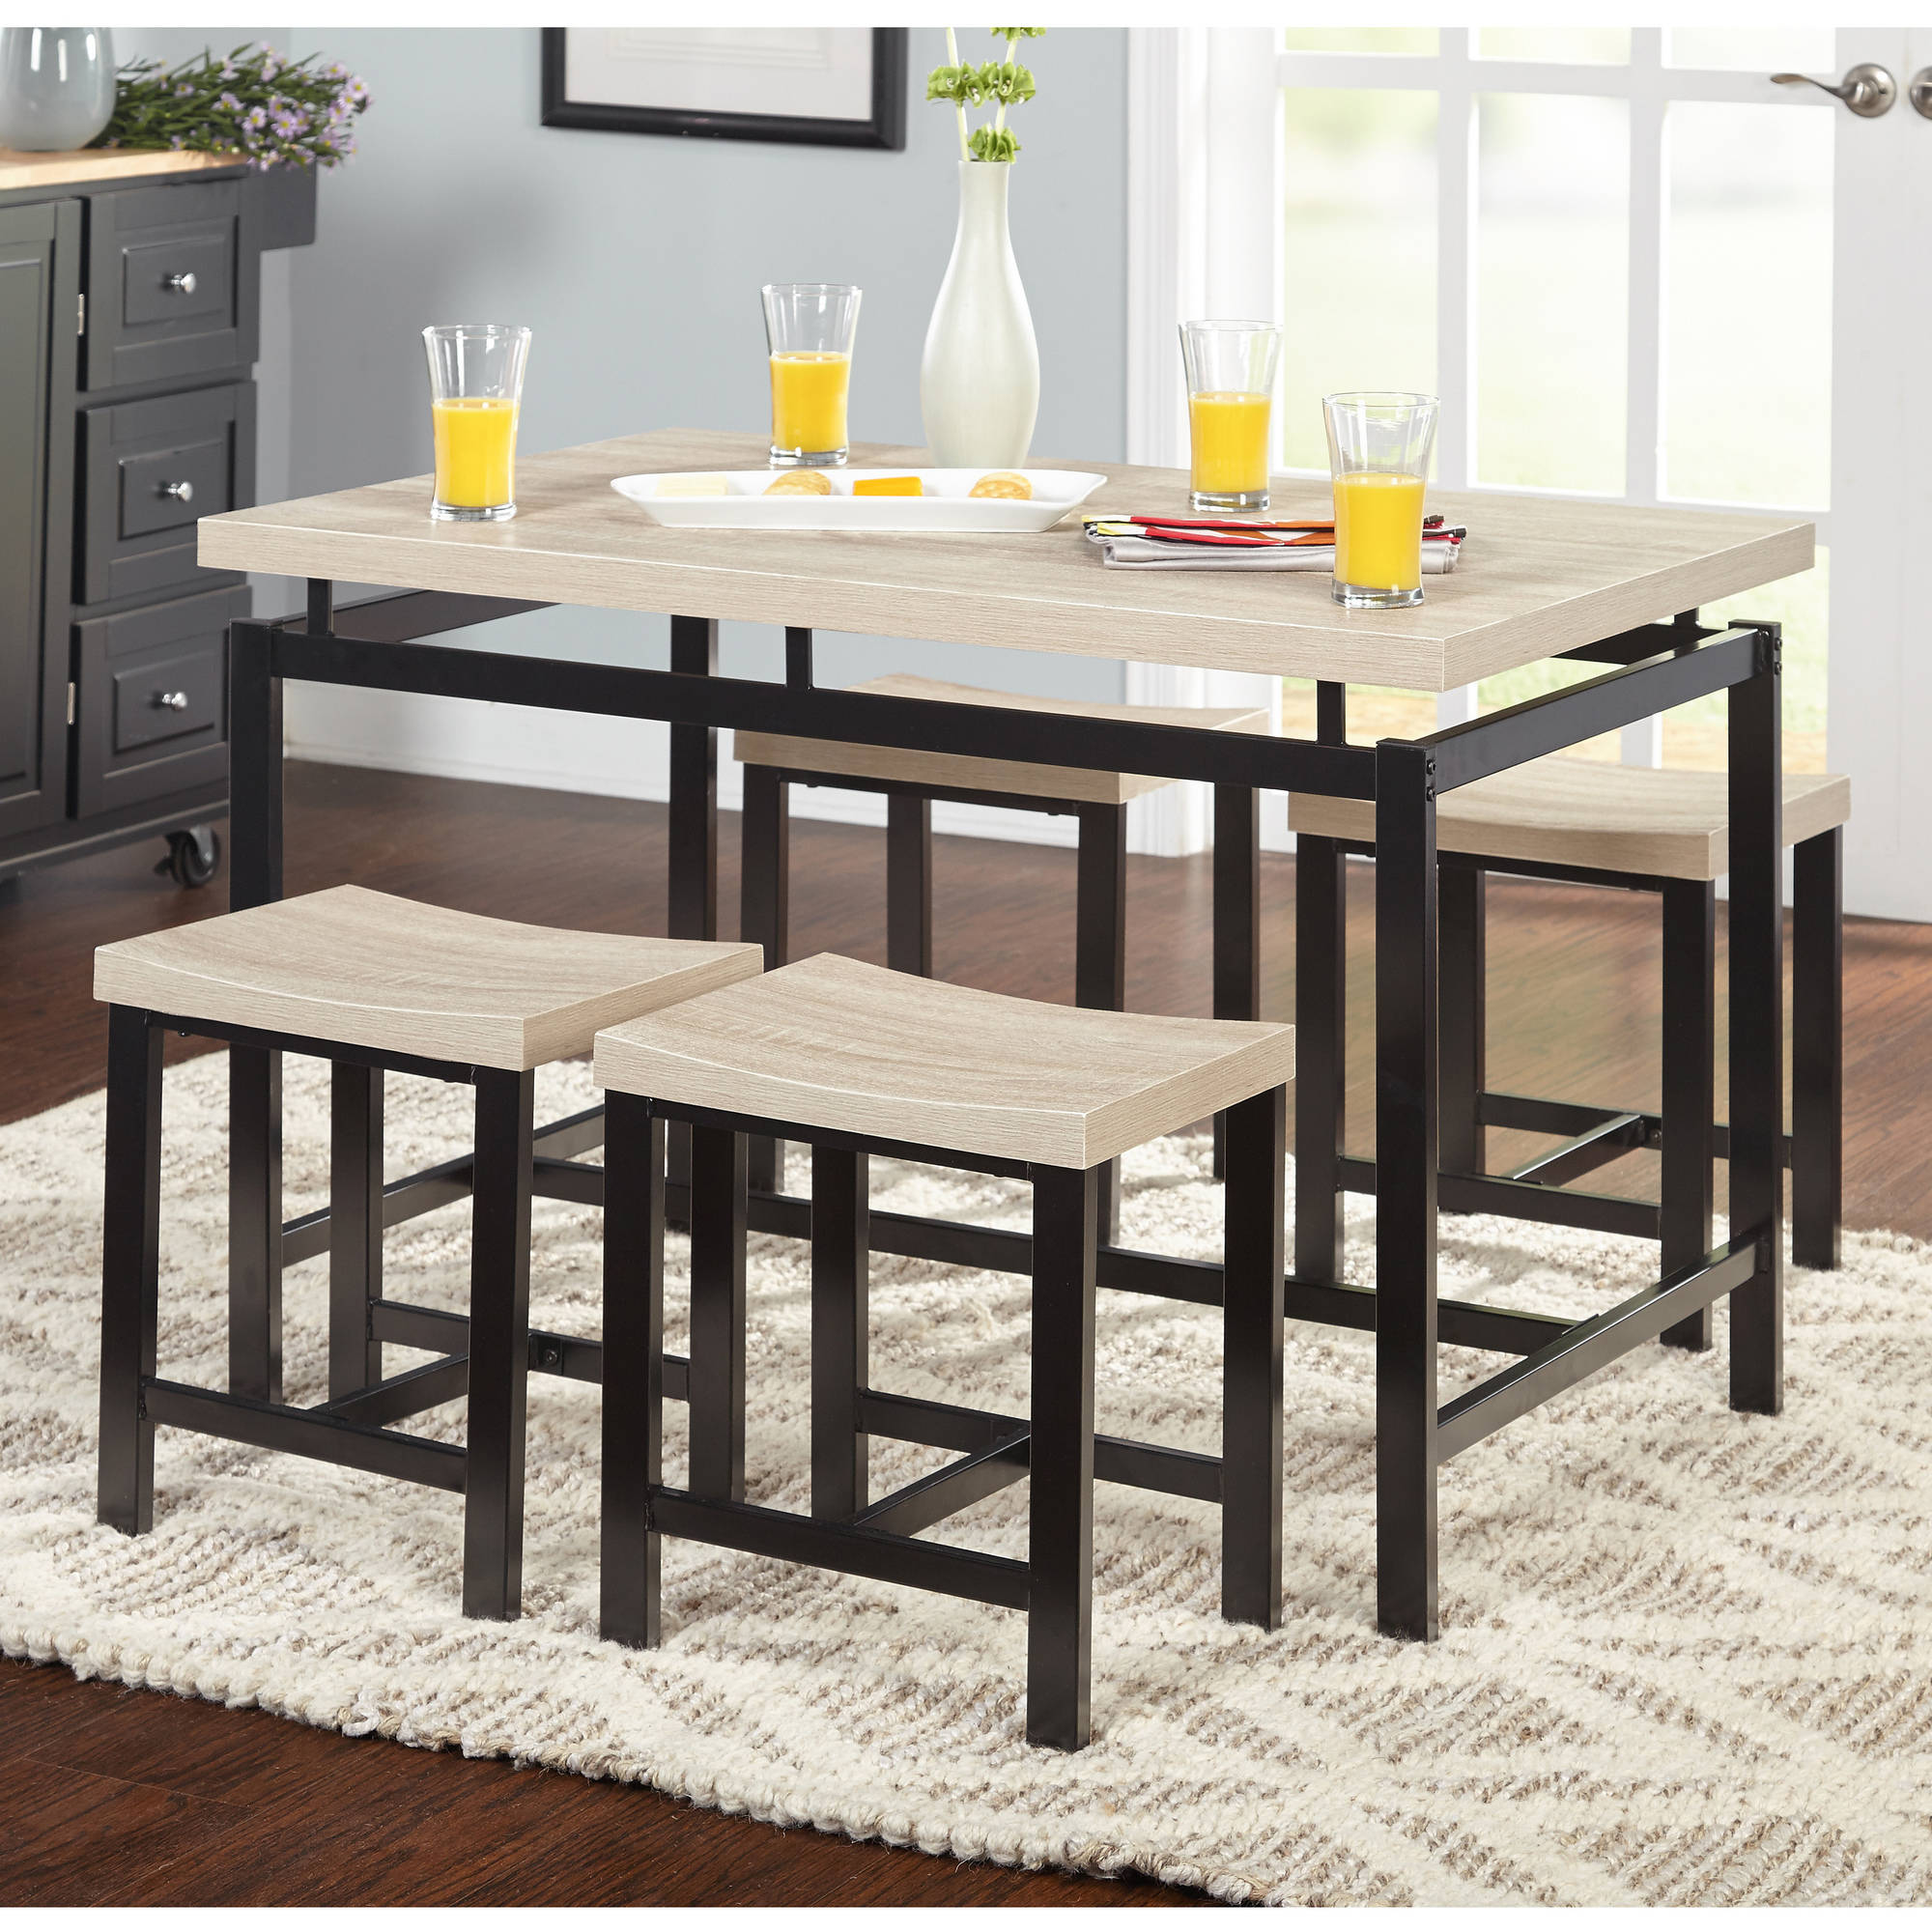 New 5 Pcs Counter Height Table Set Kitchen Bar Cd002 Uncle Wiener S Wholesale